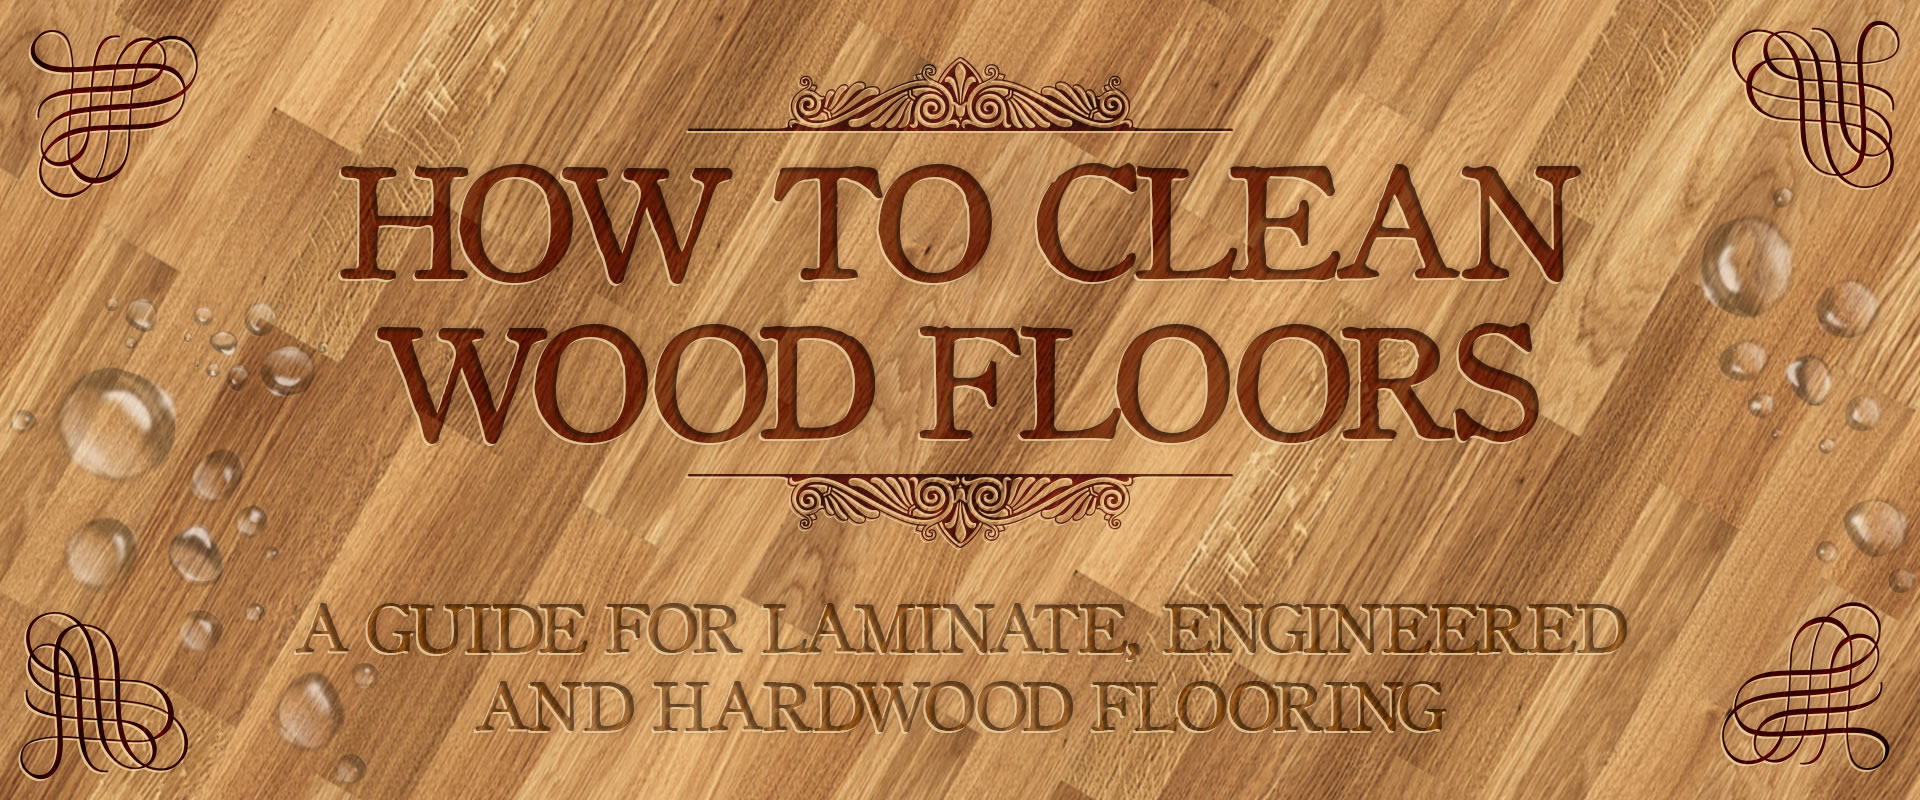 How to clean wood floors - A guide for laminate, engineered and  hardwood flooring